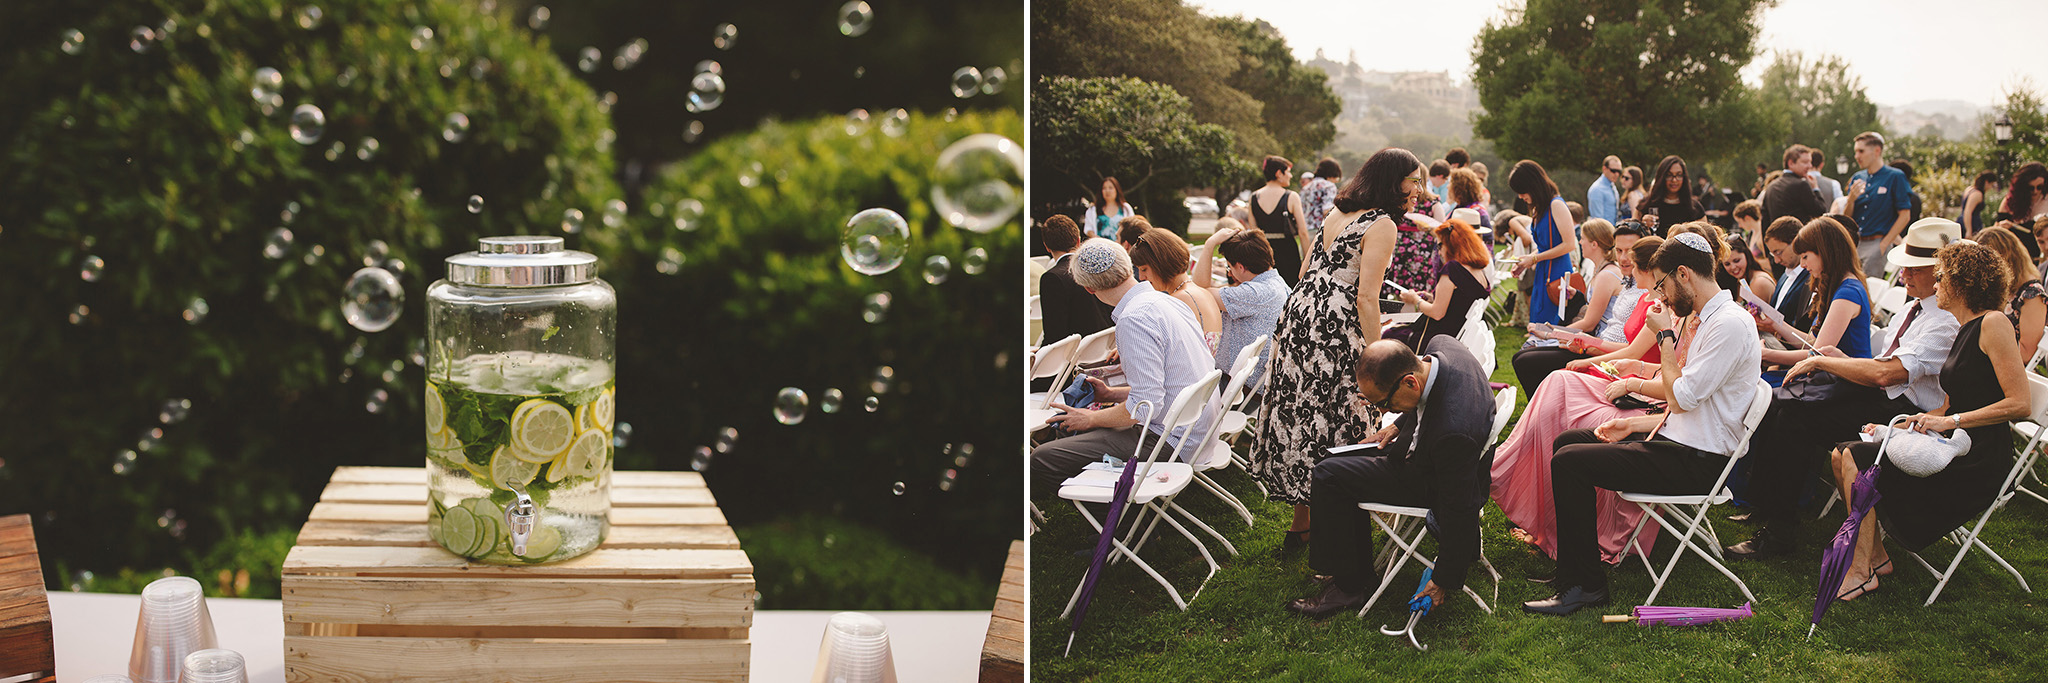 Kohl Mansion Wedding in San Francisco Outdoor wedding venue